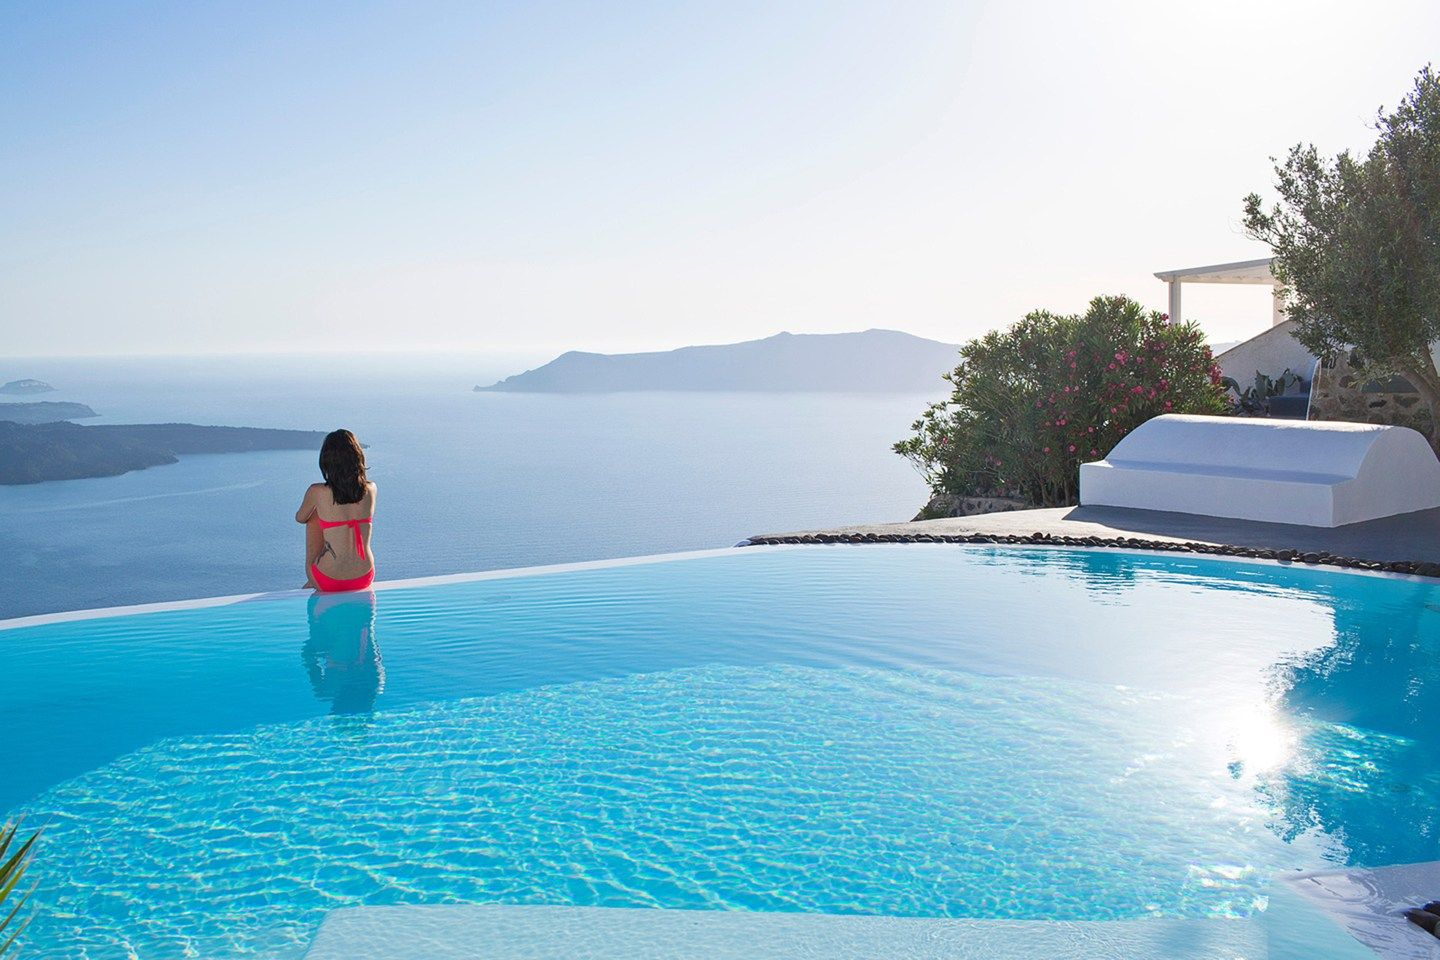 140 Of The Most Beautiful Swimming Pools In The World